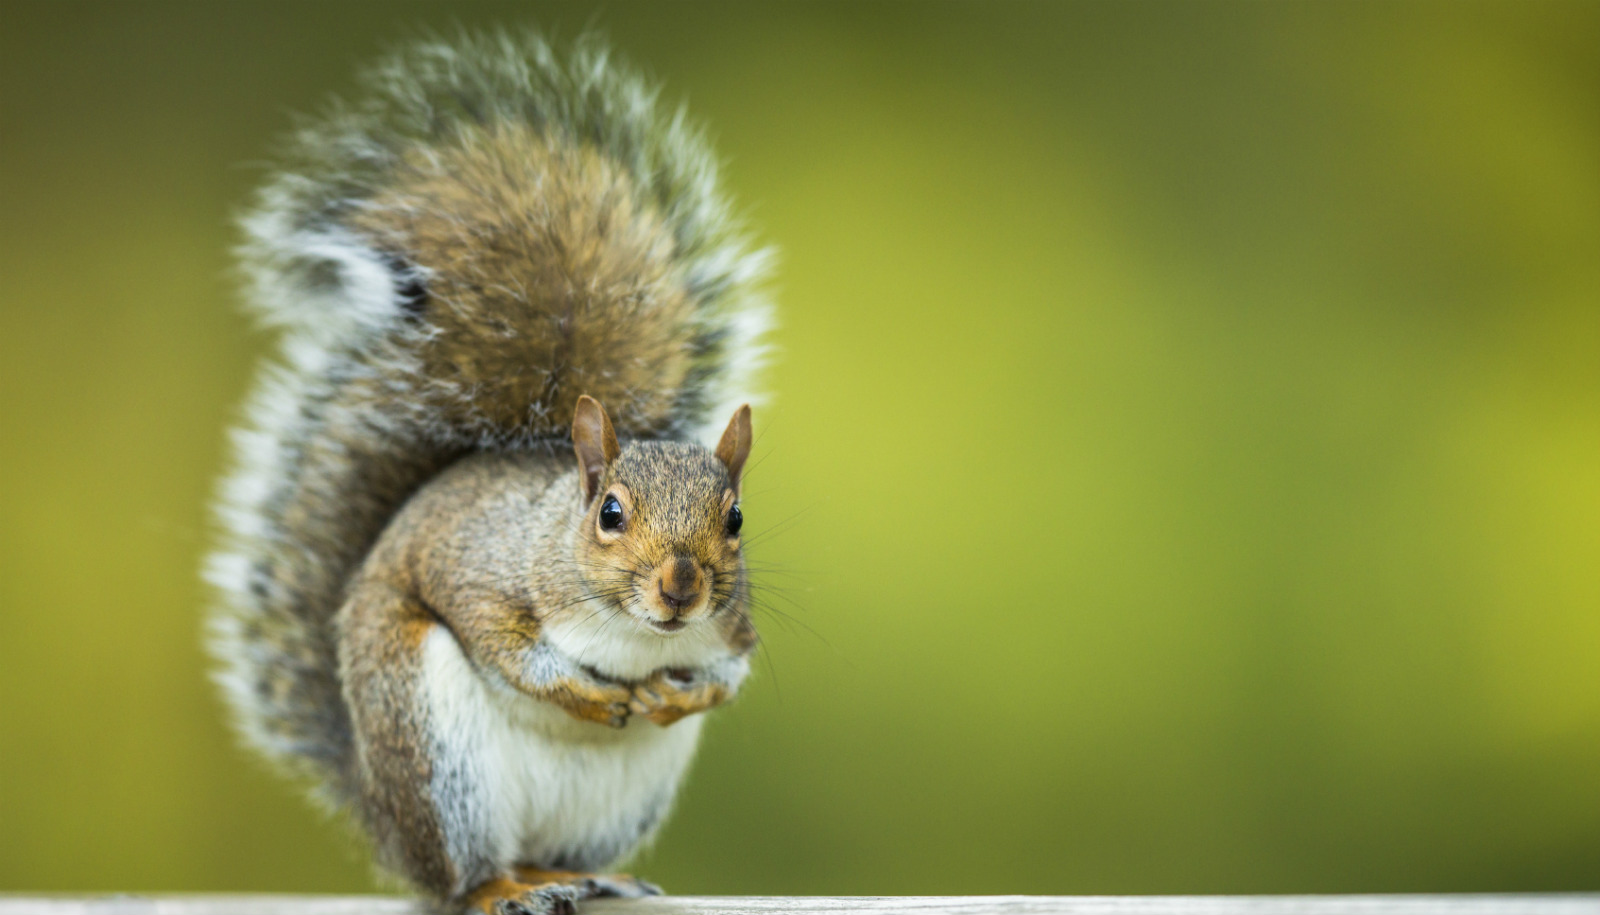 Watch this angry squirrel go nuts and flick its tail - Futurity